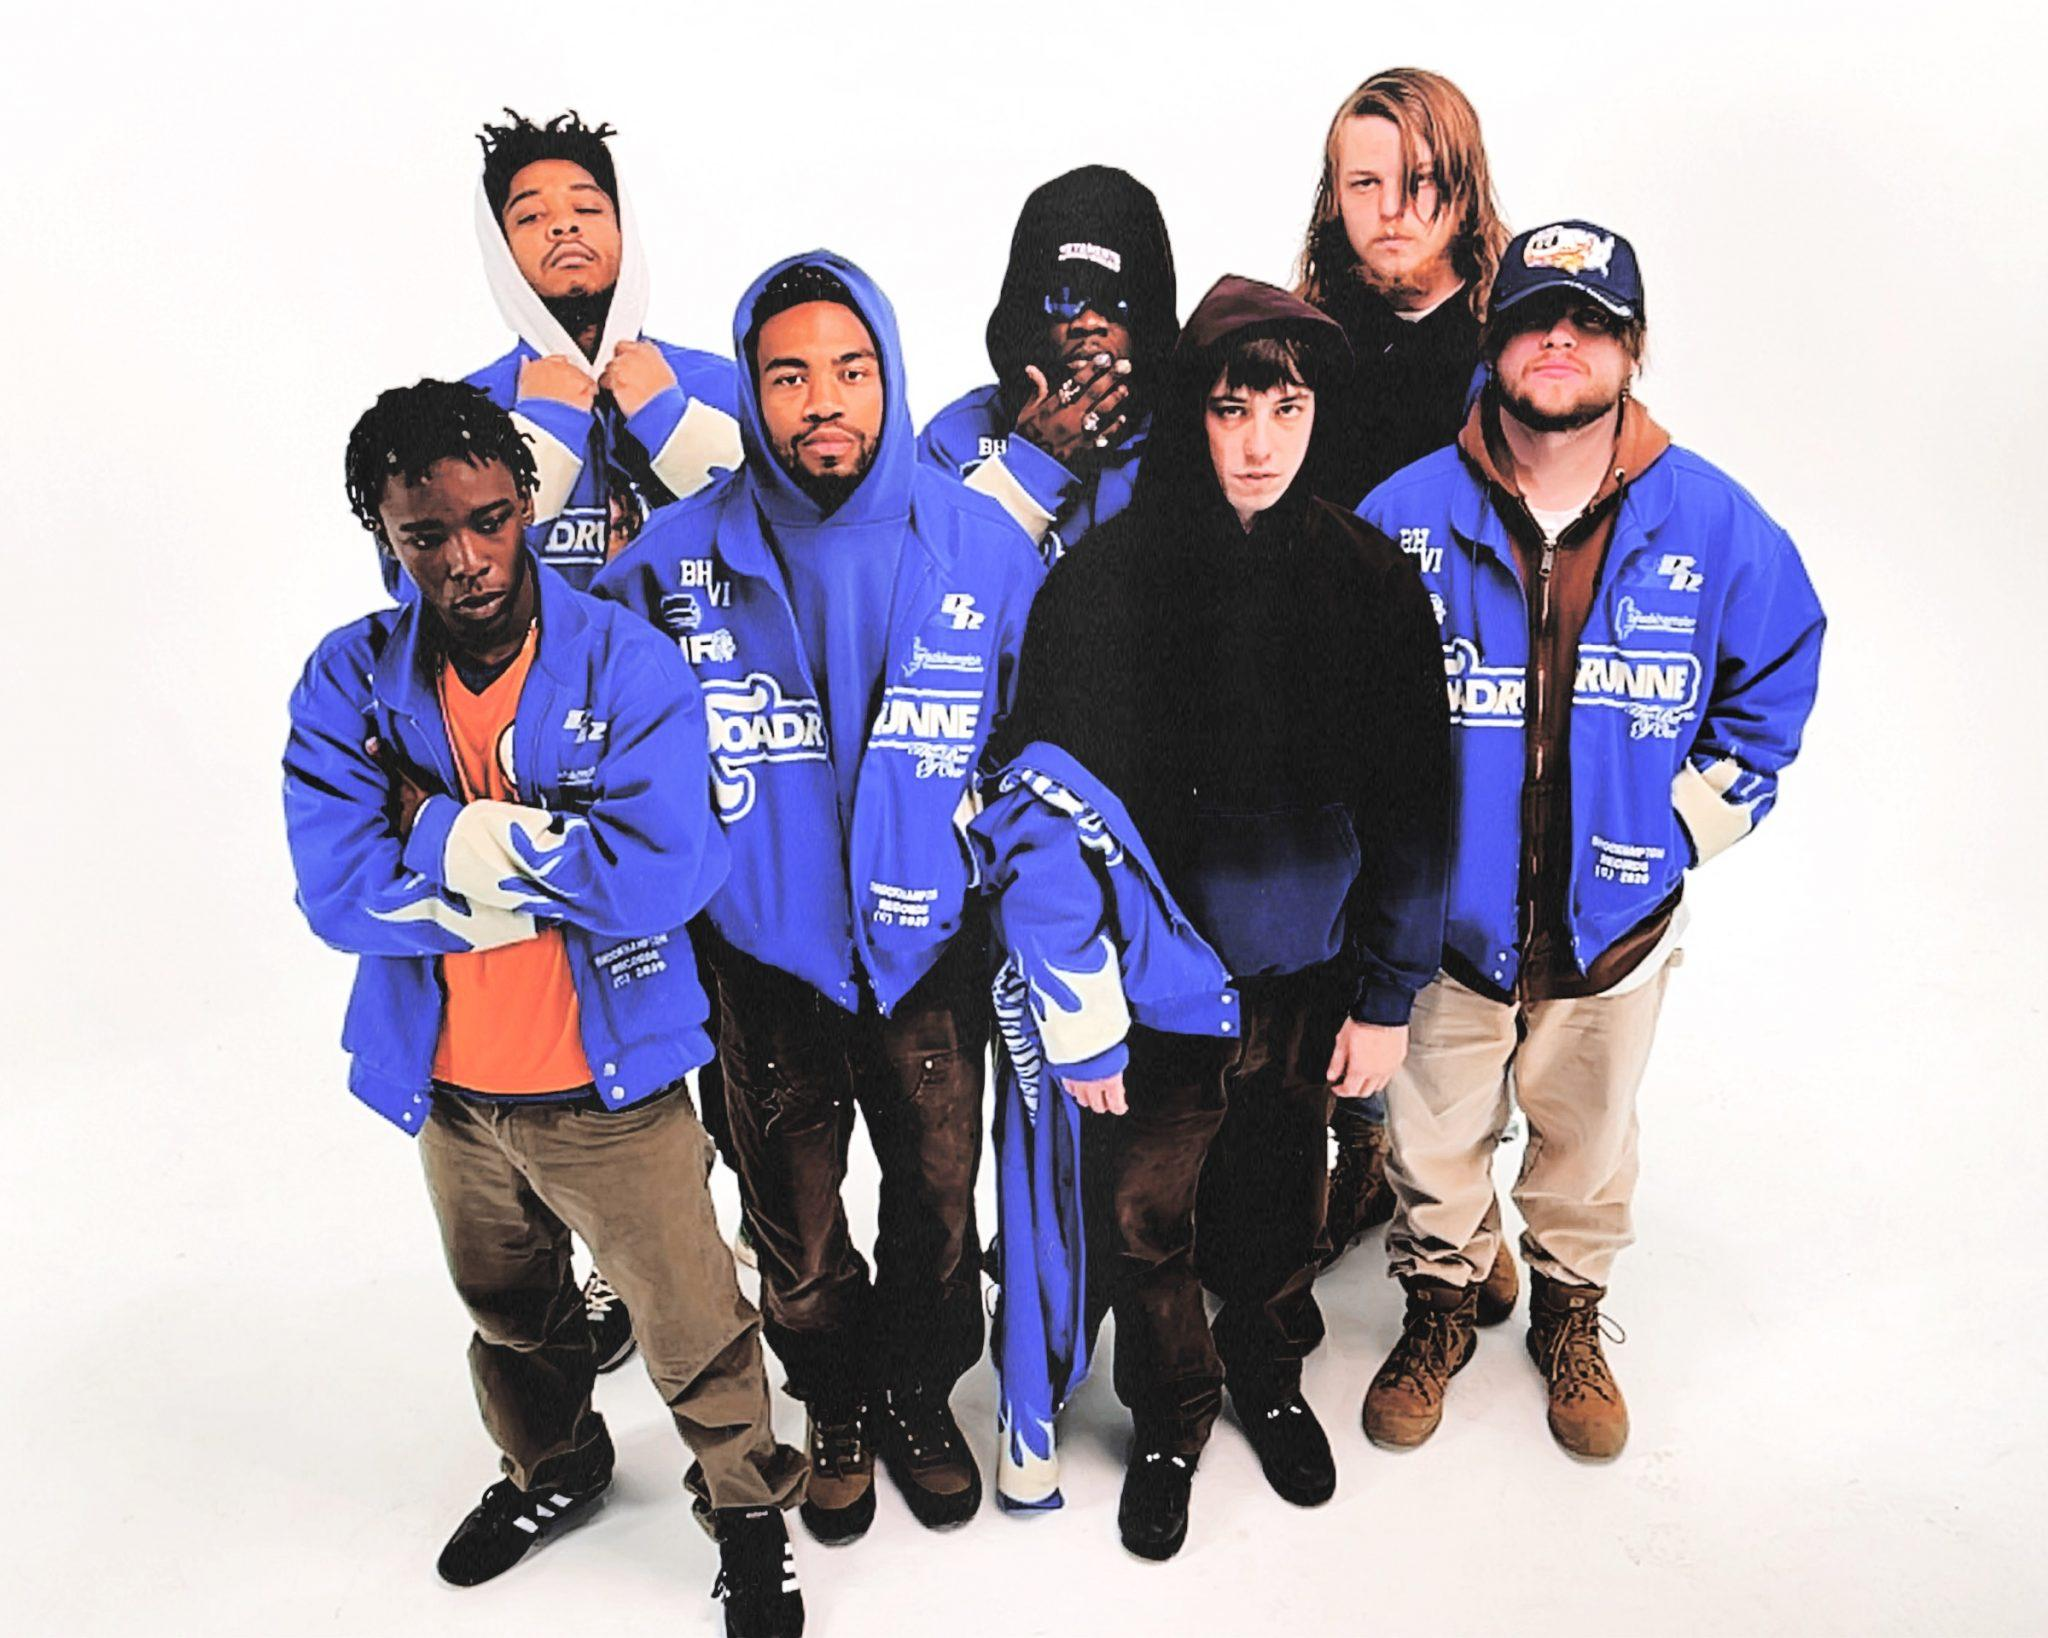 BROCKHAMPTON Preferred for Covers scaled